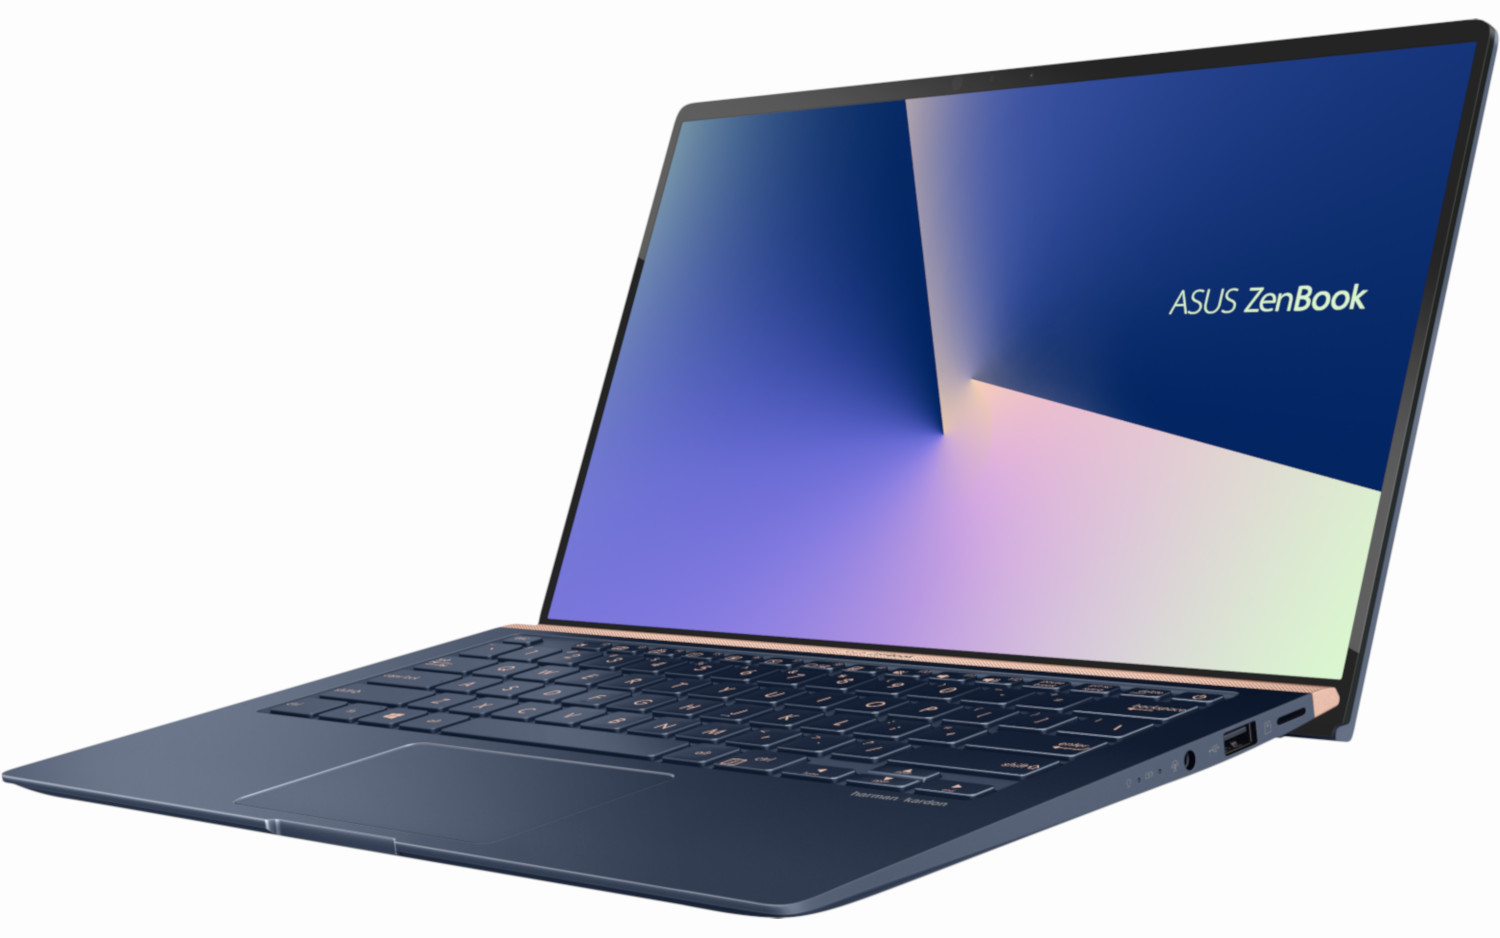 New ASUS ZenBook Laptops Now Up for Preorder, With Intel